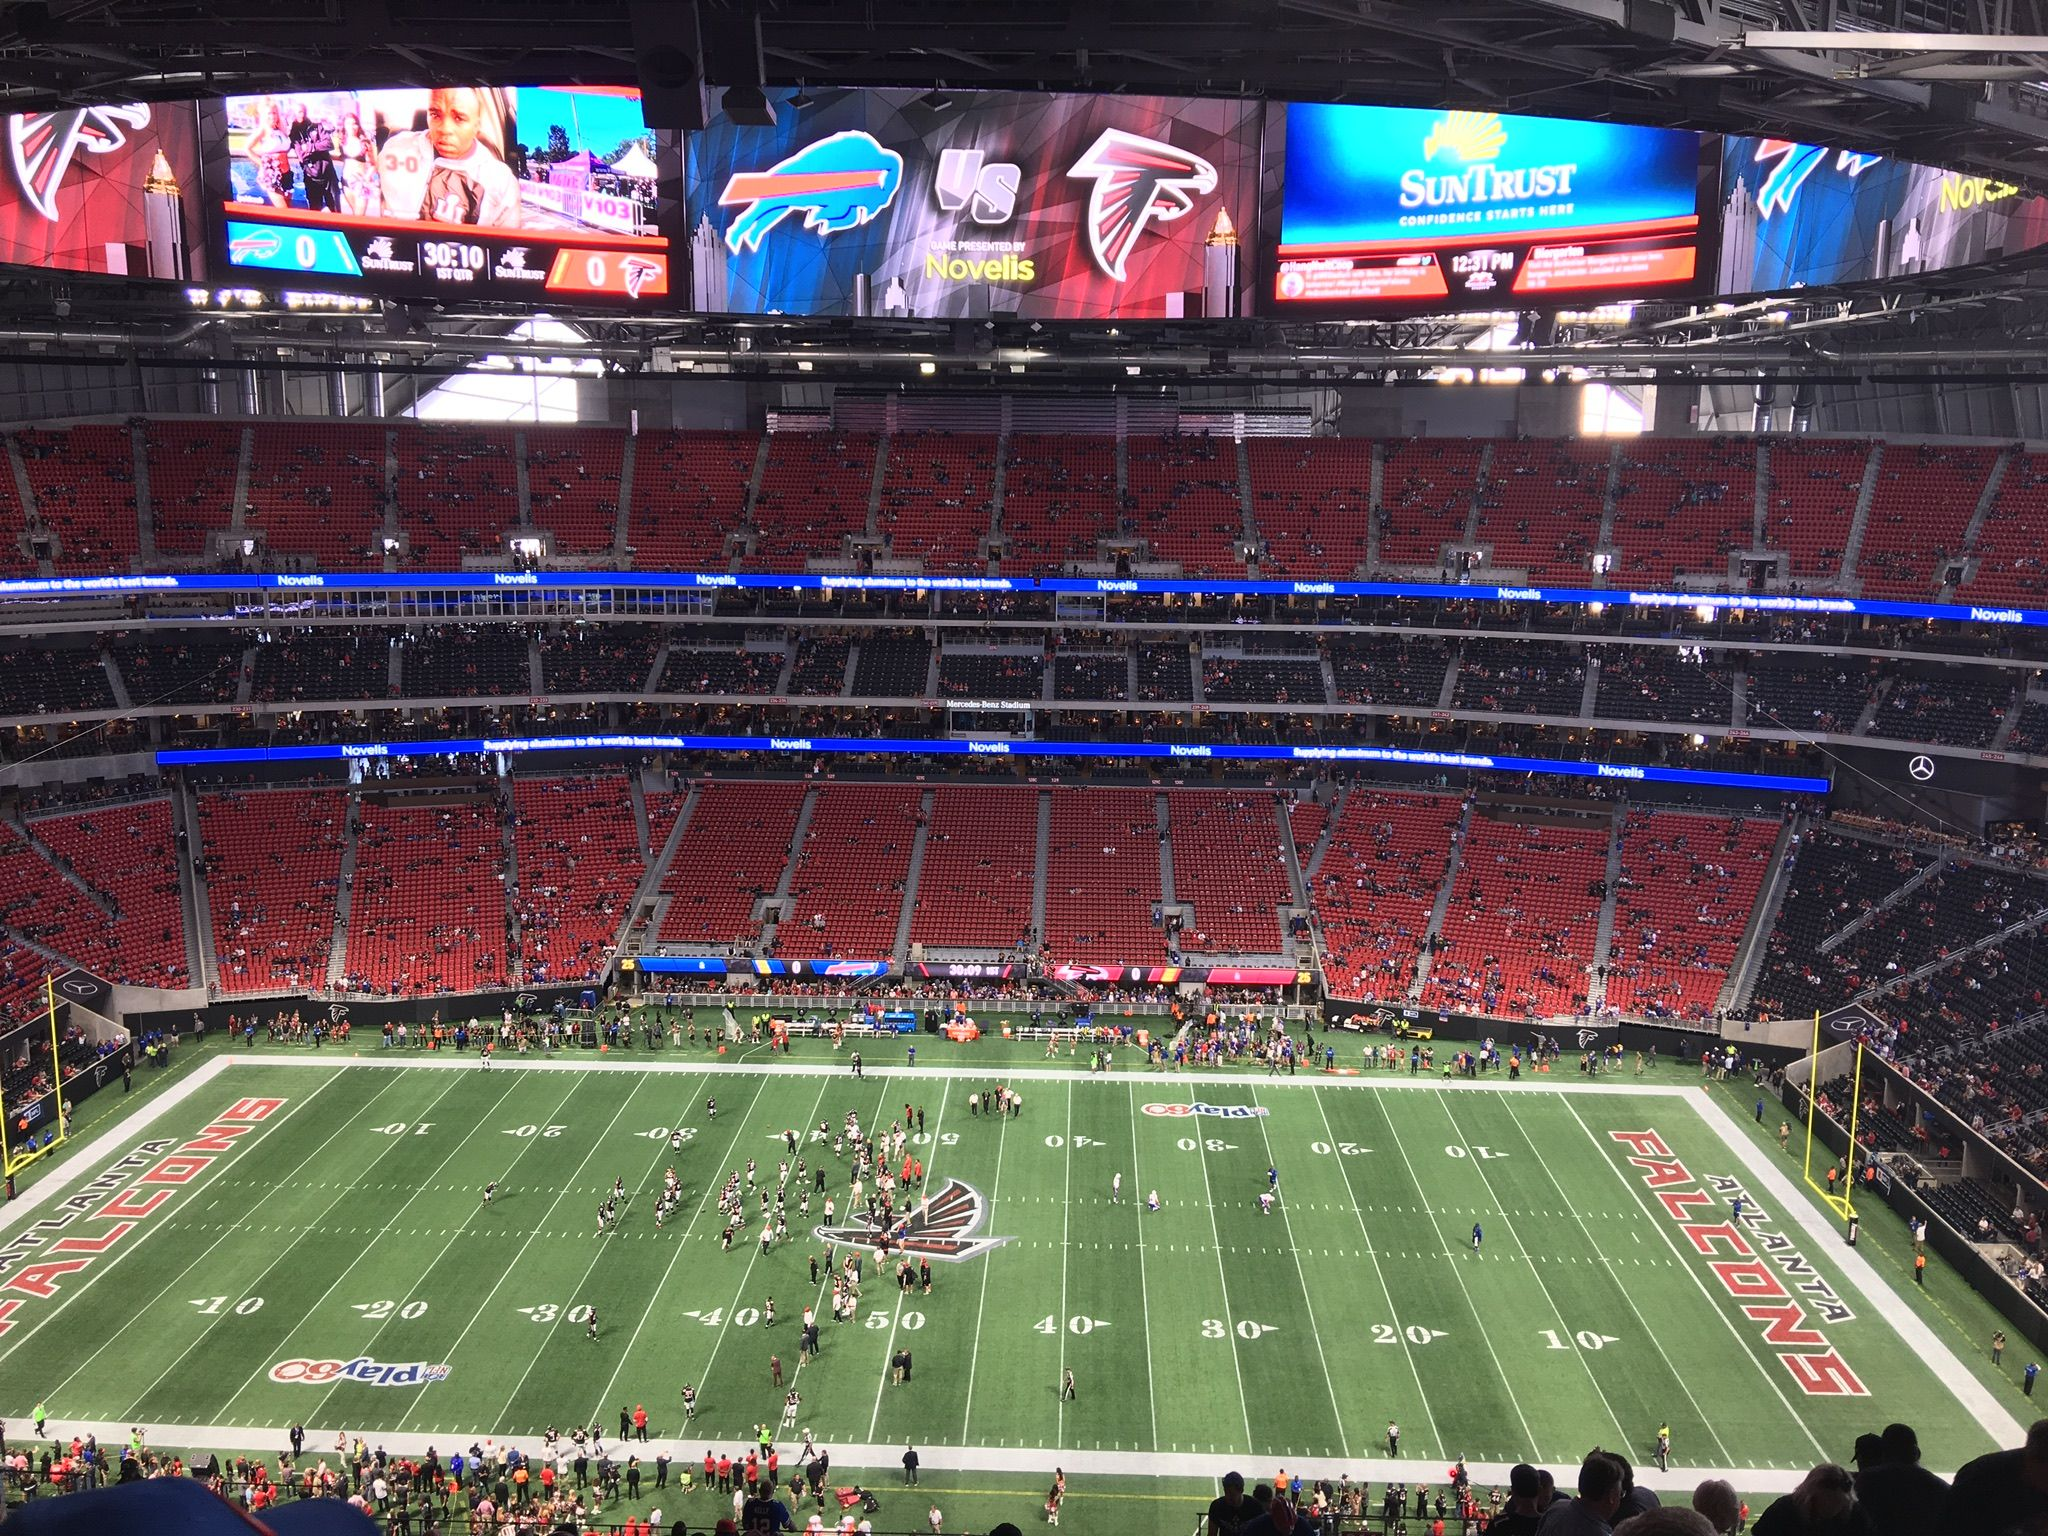 Atlanta Falcons Seat View for Mercedes-Benz Stadium Section 311, Row 23, Seat 7